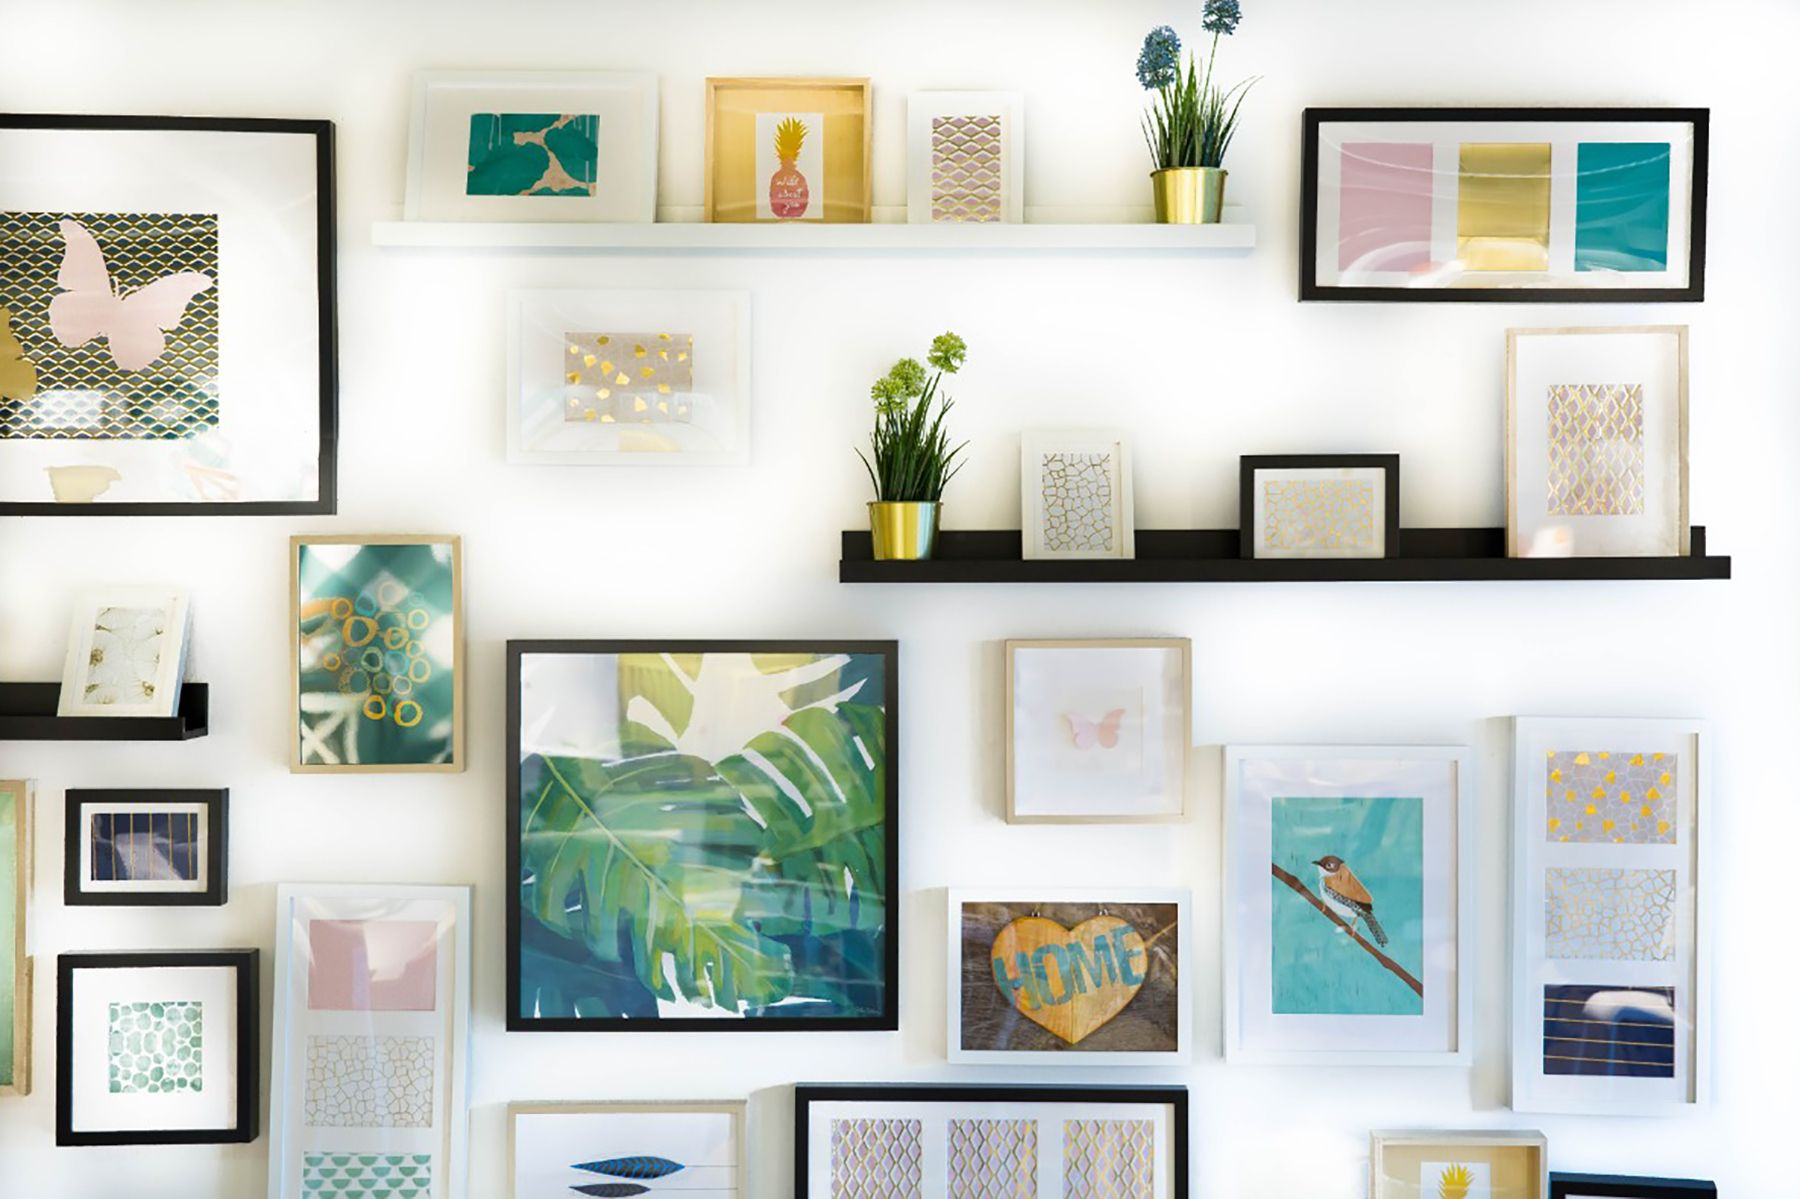 20 Easy Diy Home Projects To Spruce Up Your Space Hall Of Frames In 2020 Diy Wall Art Eclectic Gallery Wall Inspirational Wall Decor